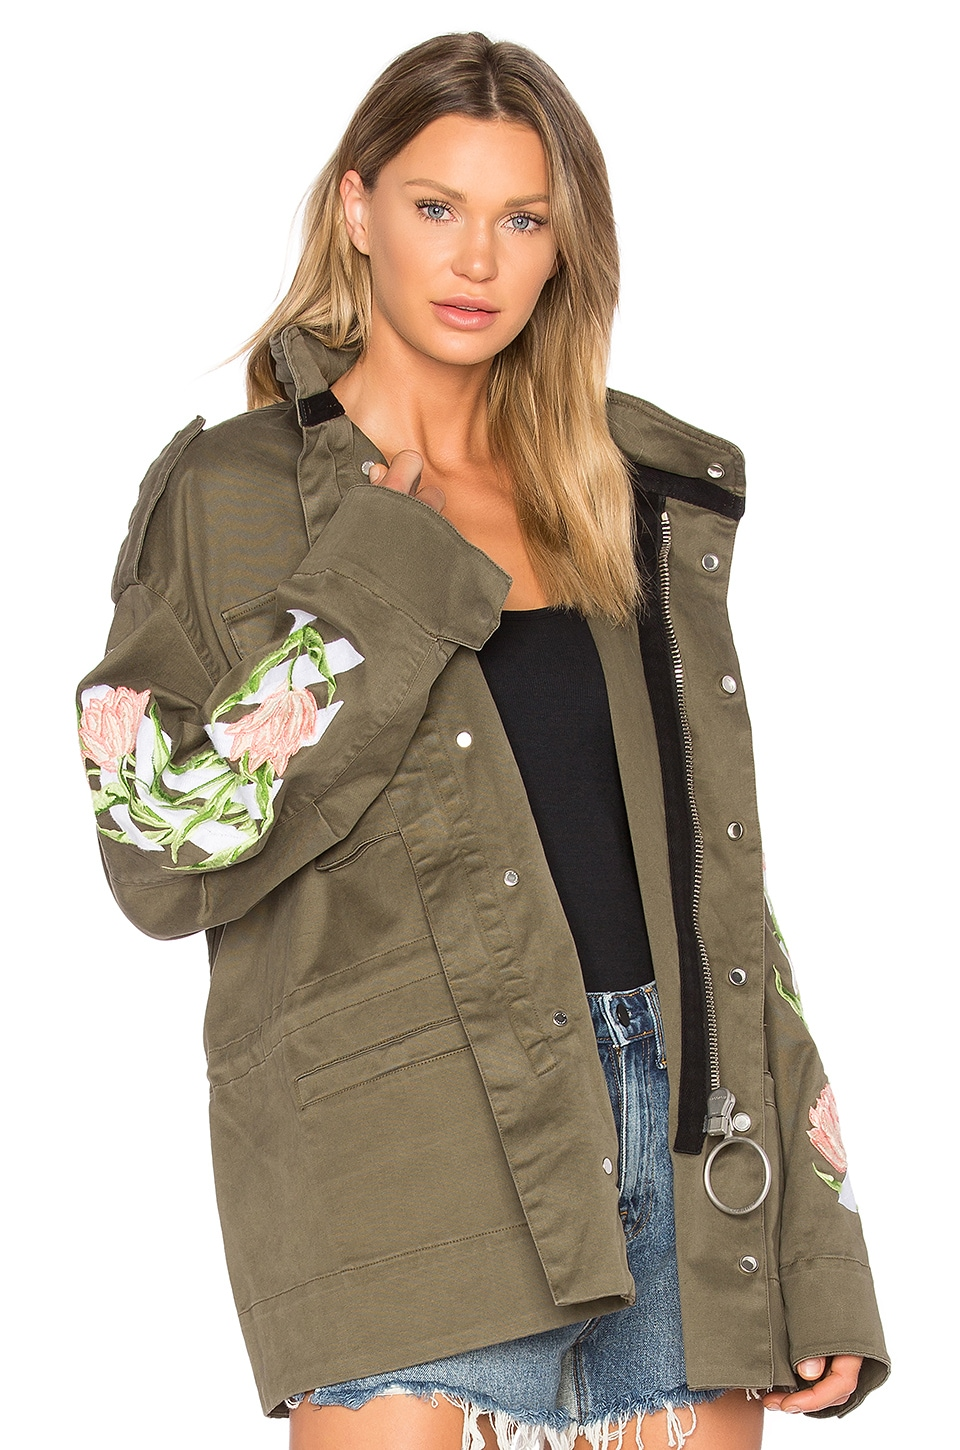 OFF-WHITE Tulips M65 Jacket in White, Military Green & Multi